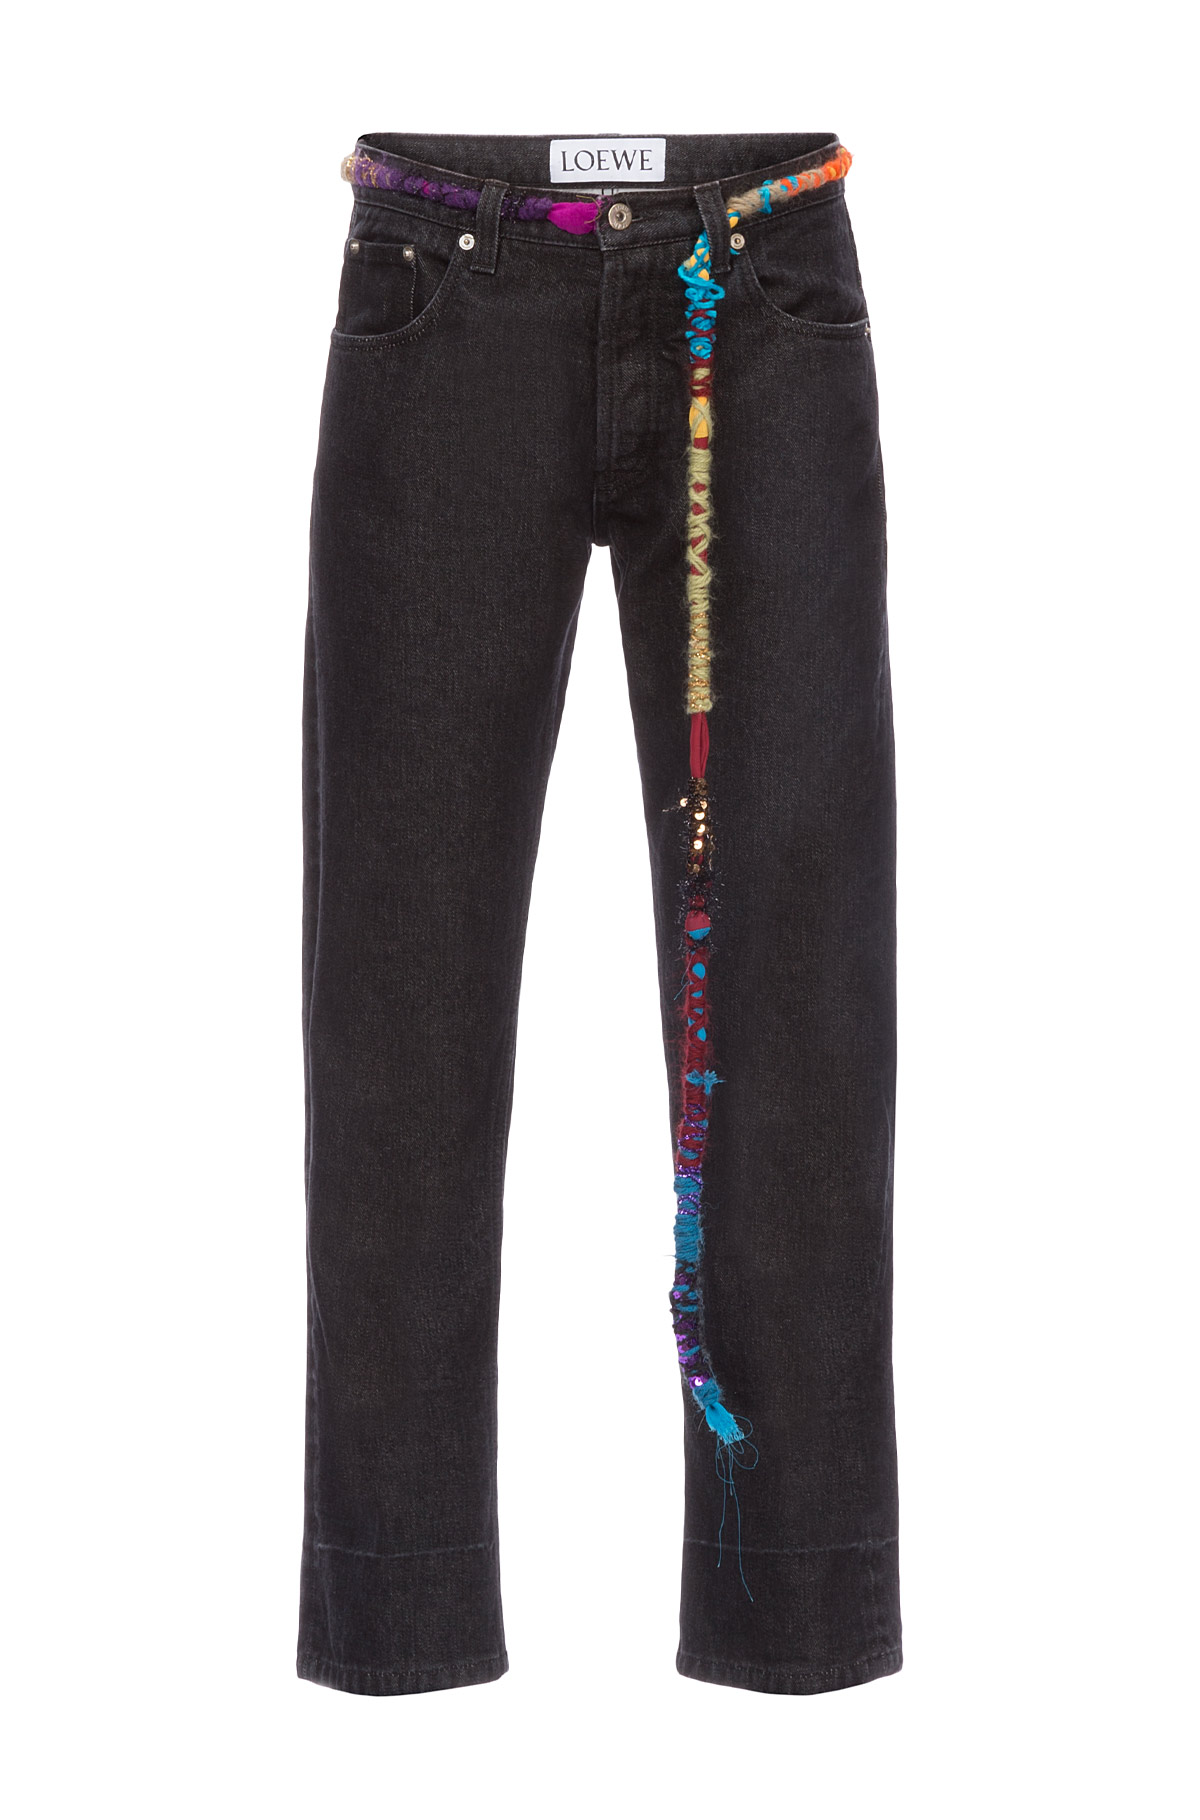 LOEWE Embroidered Knot 5 Pkt Jeans ブラック front